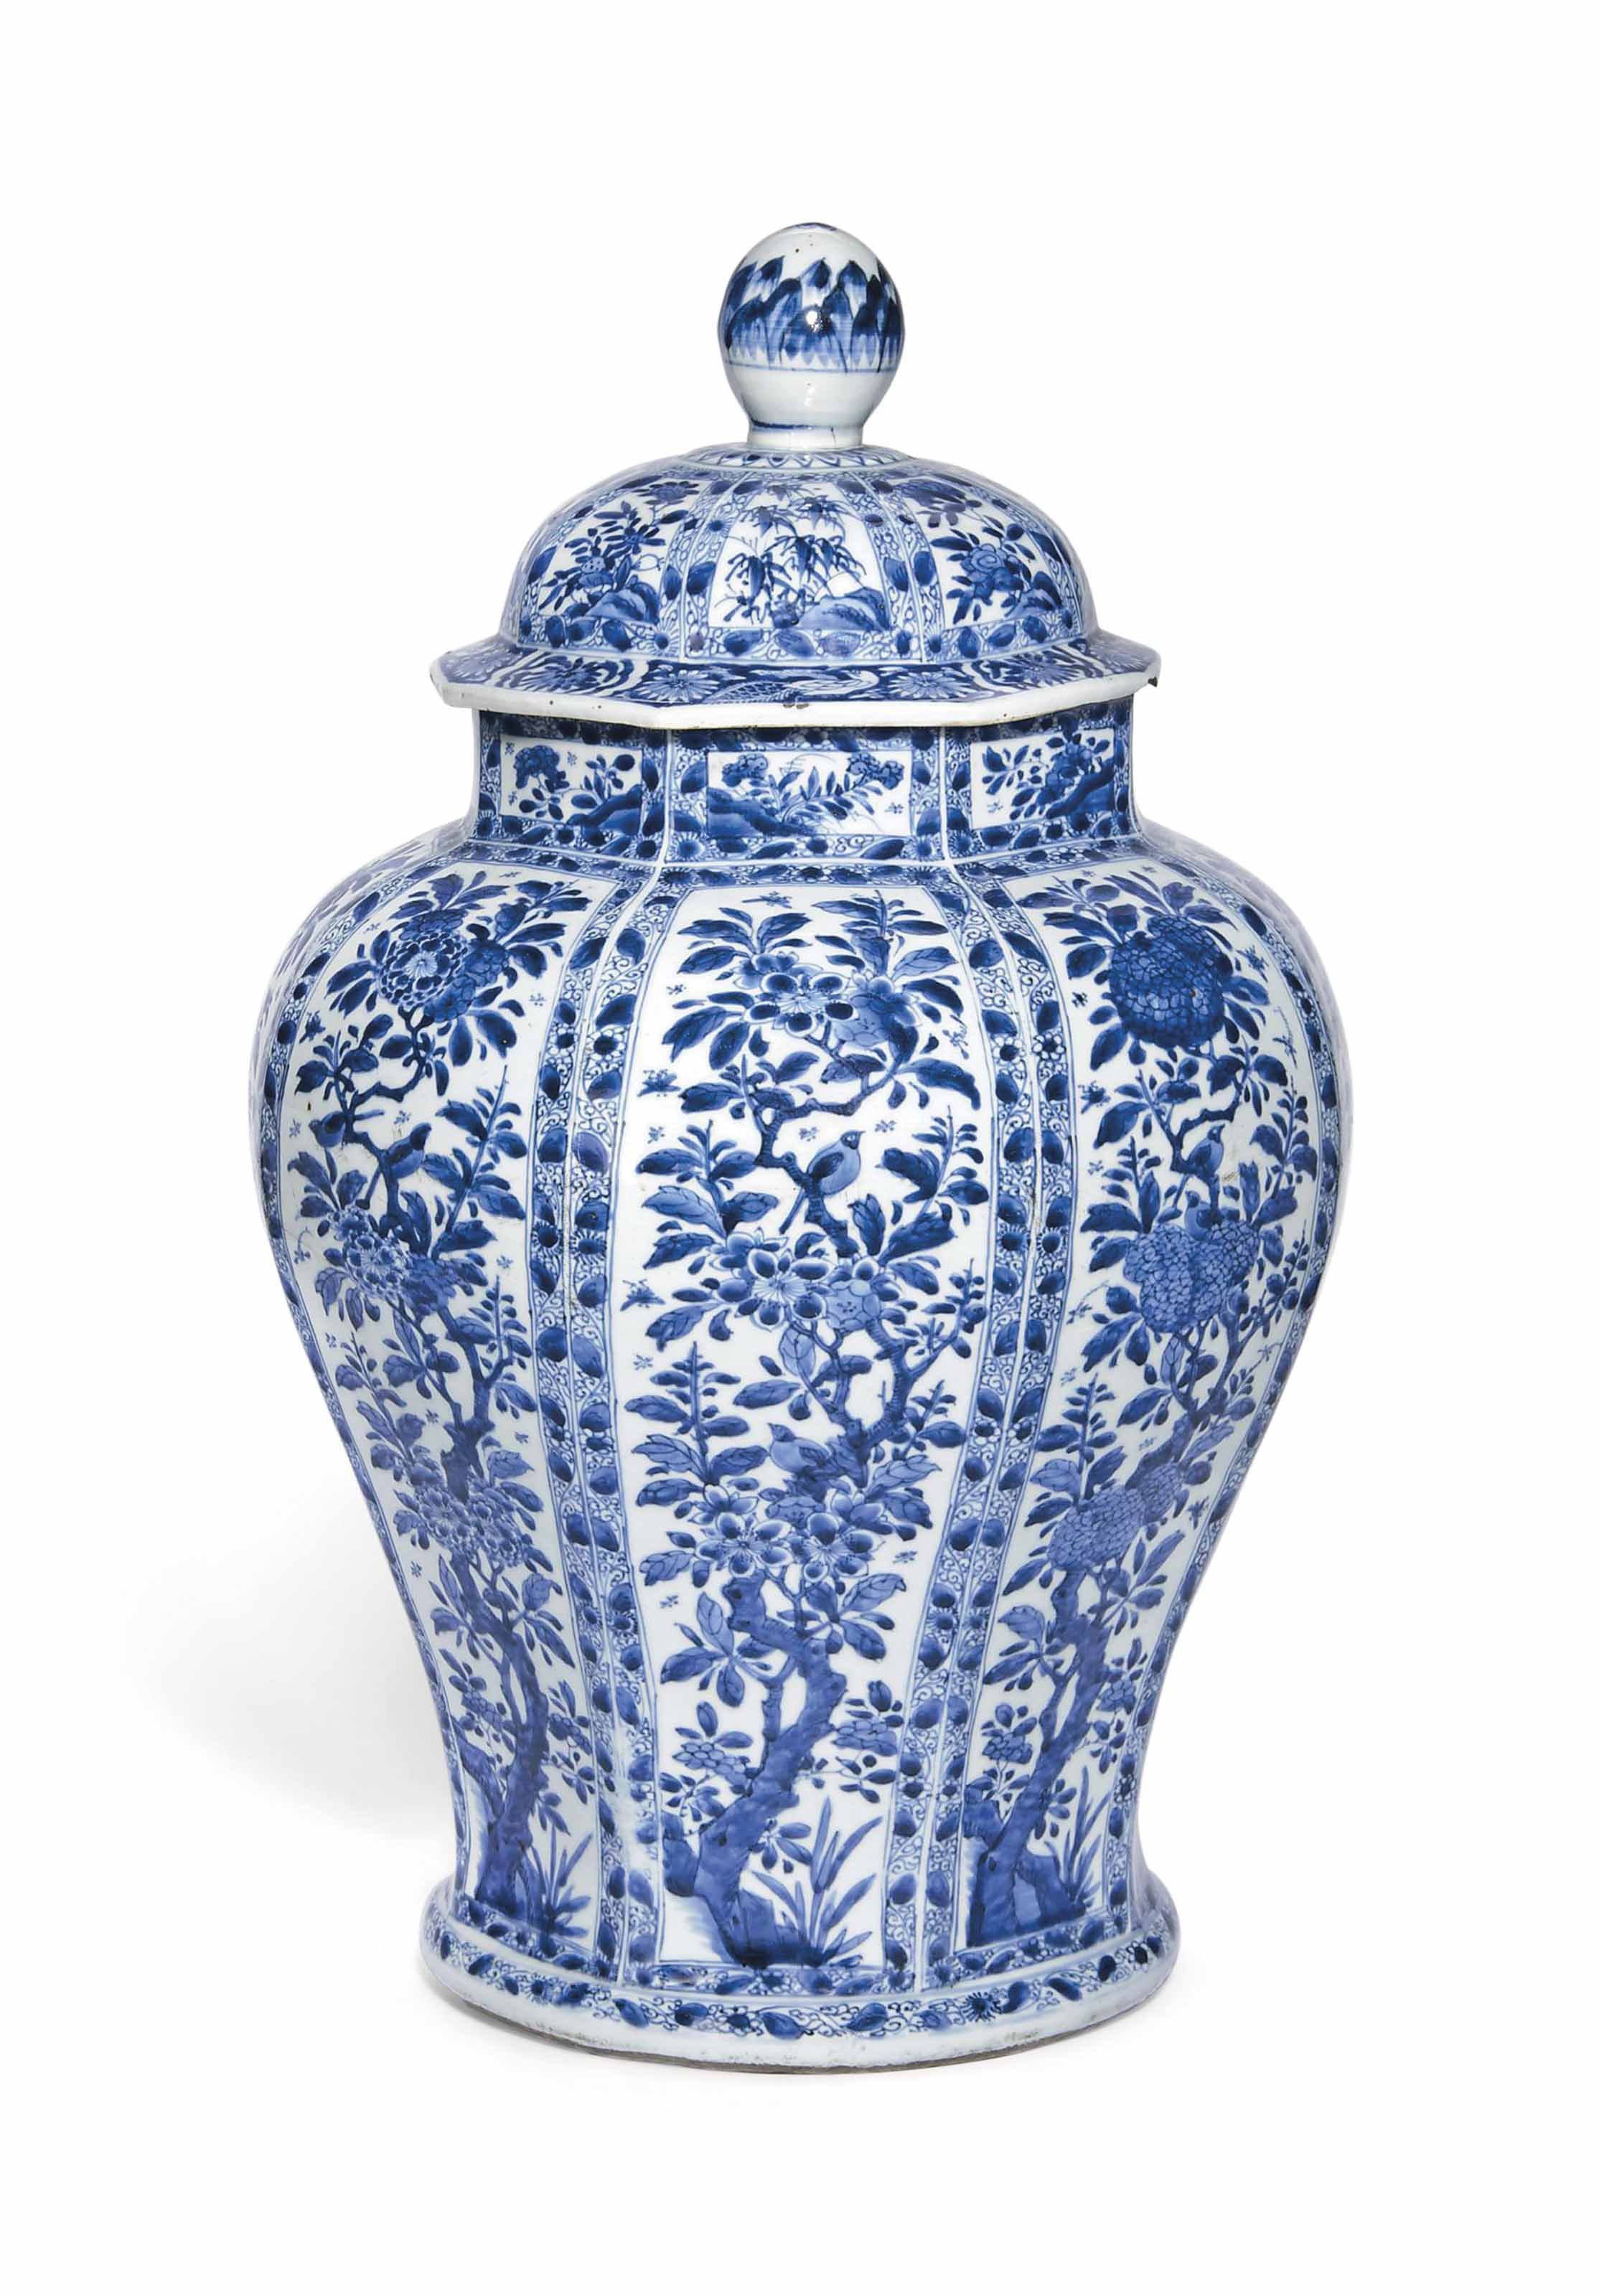 A LARGE CHINESE BLUE AND WHITE OCTAGONAL JAR AND COVER